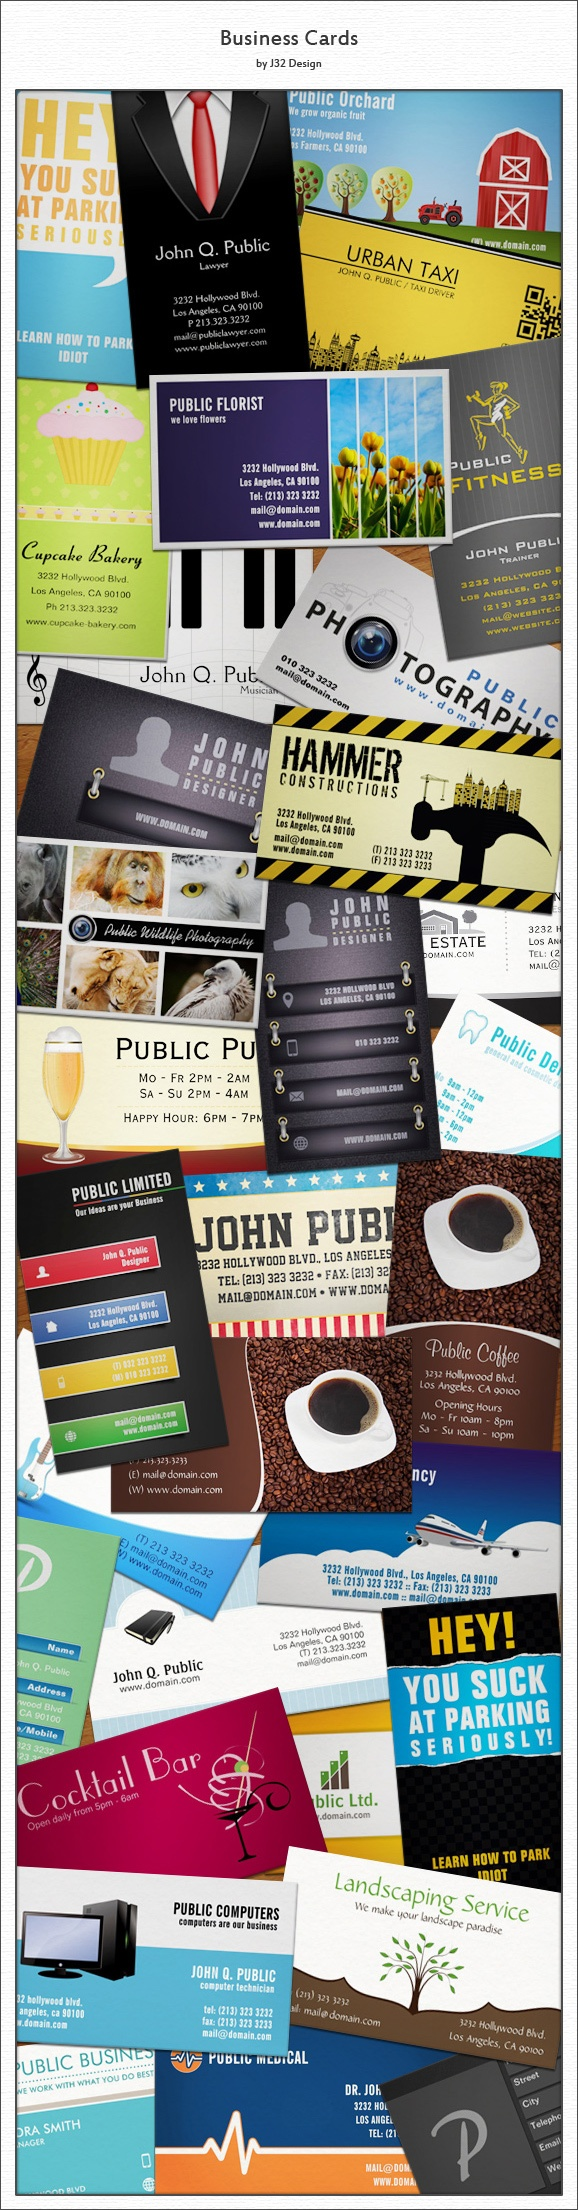 Business Cards by J32 Design, #businesscards #graphicdesign #design #collection